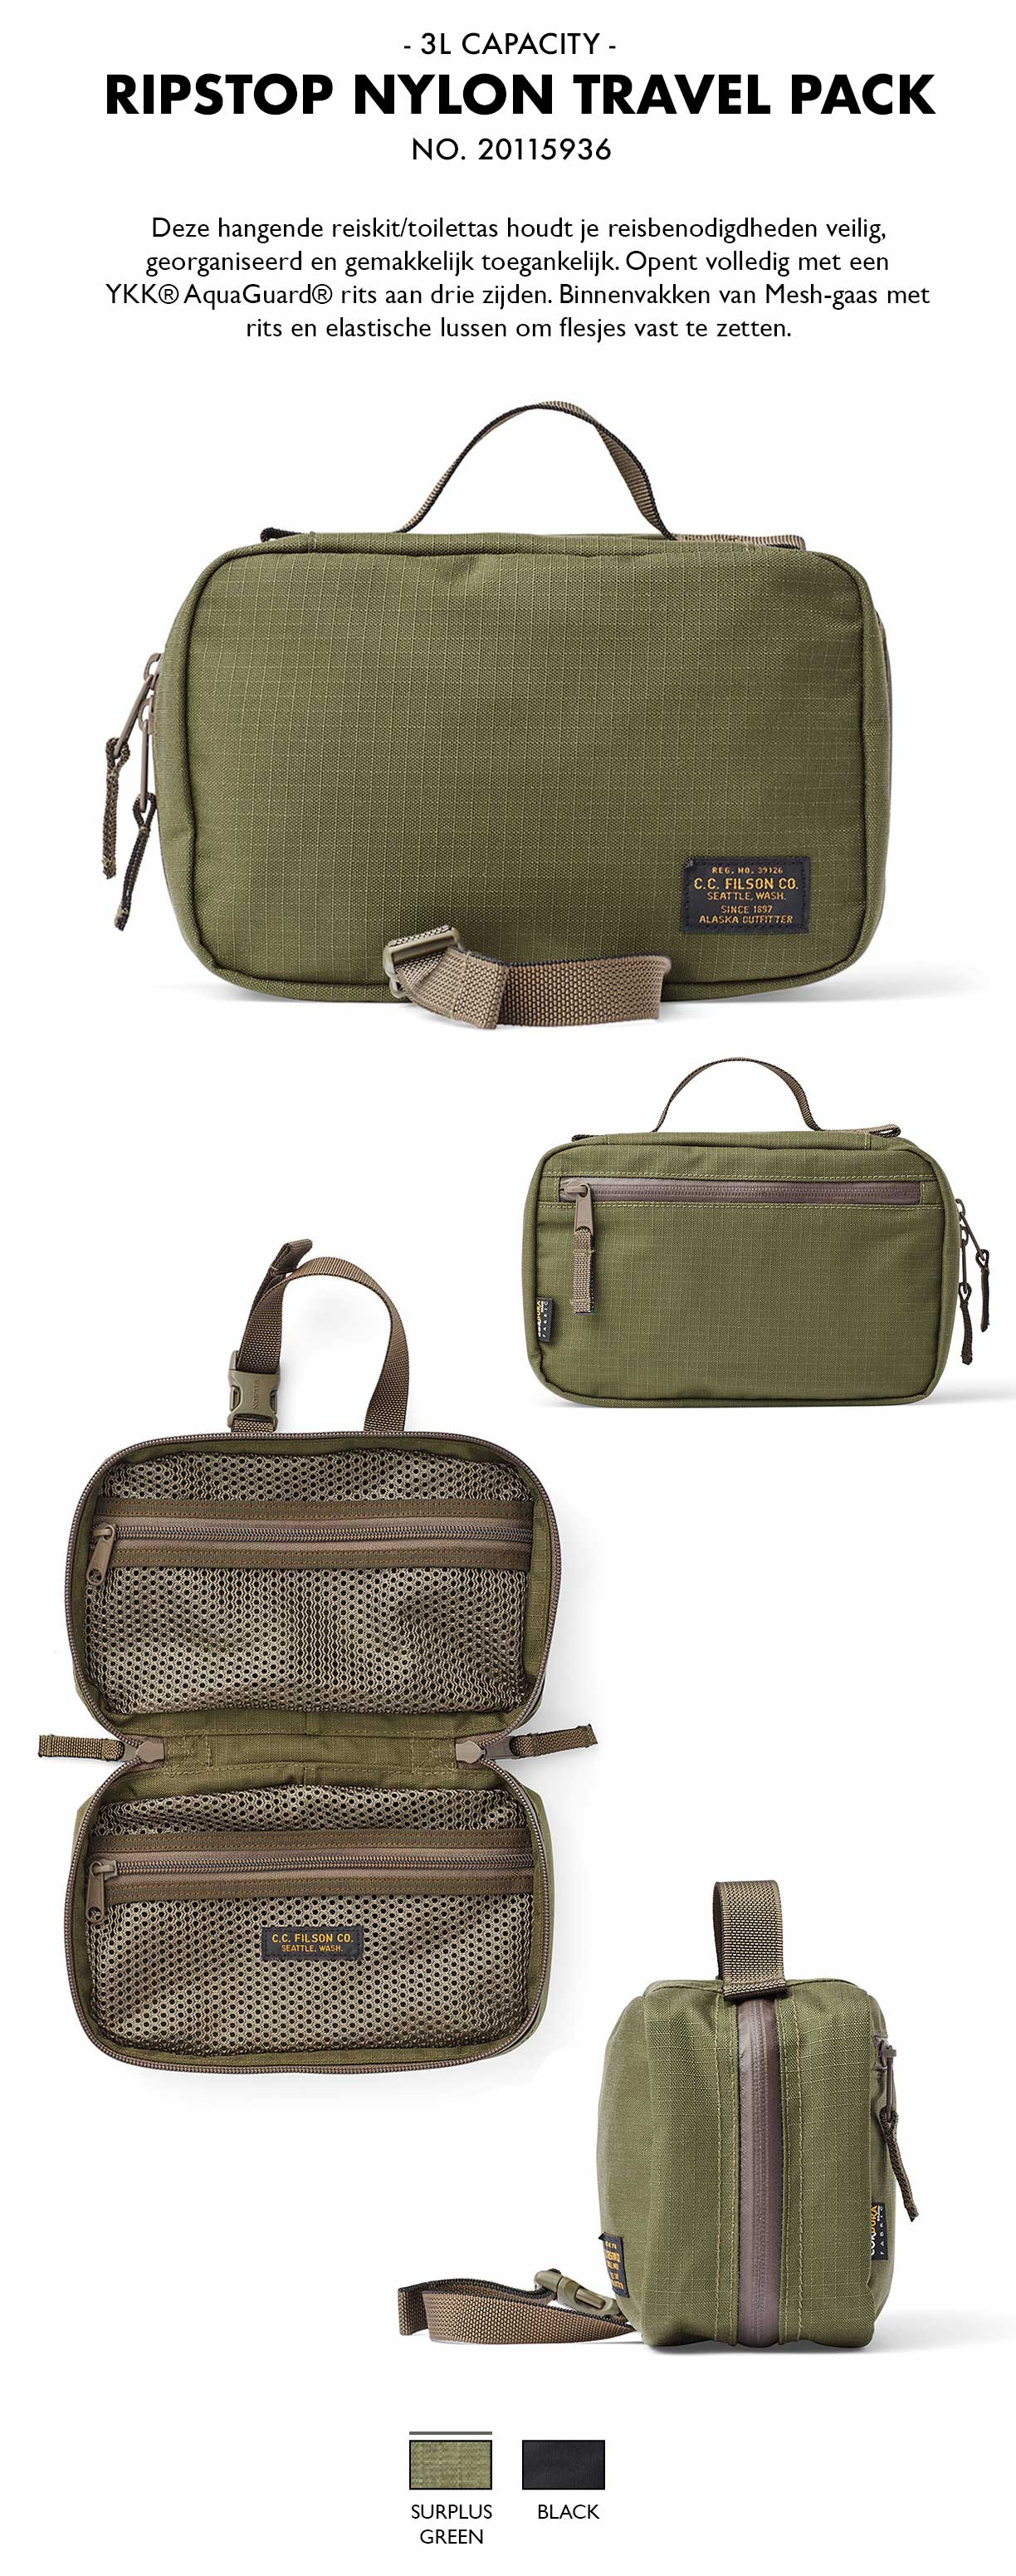 Filson Ripstop Nylon Travel Pack Surplus Green Product-informatie